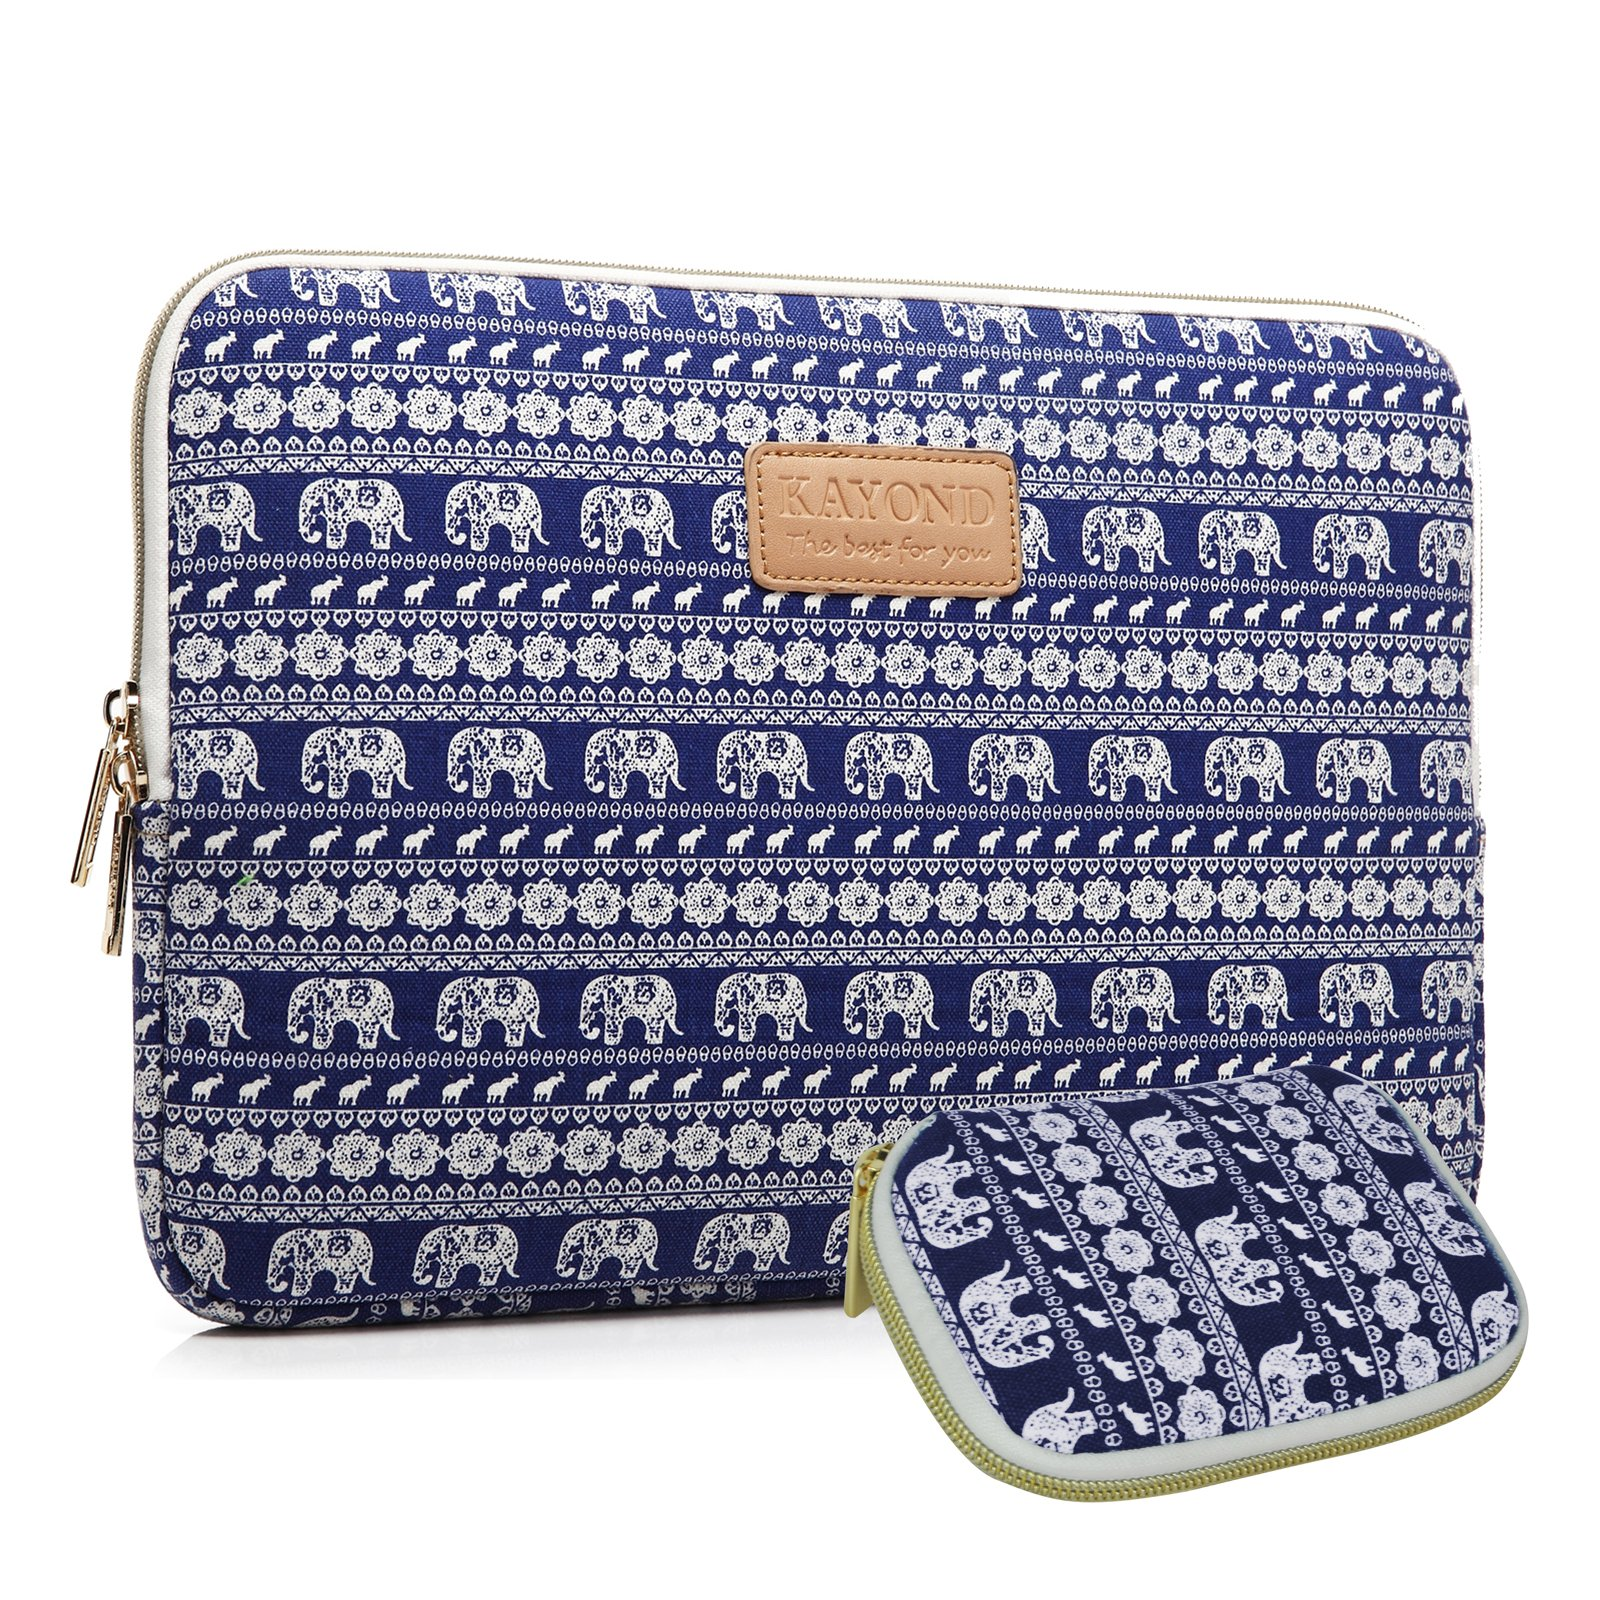 Kayond KY-23 Canvas Fabric Sleeve for 17-Inch Laptops - Elephant Patterns